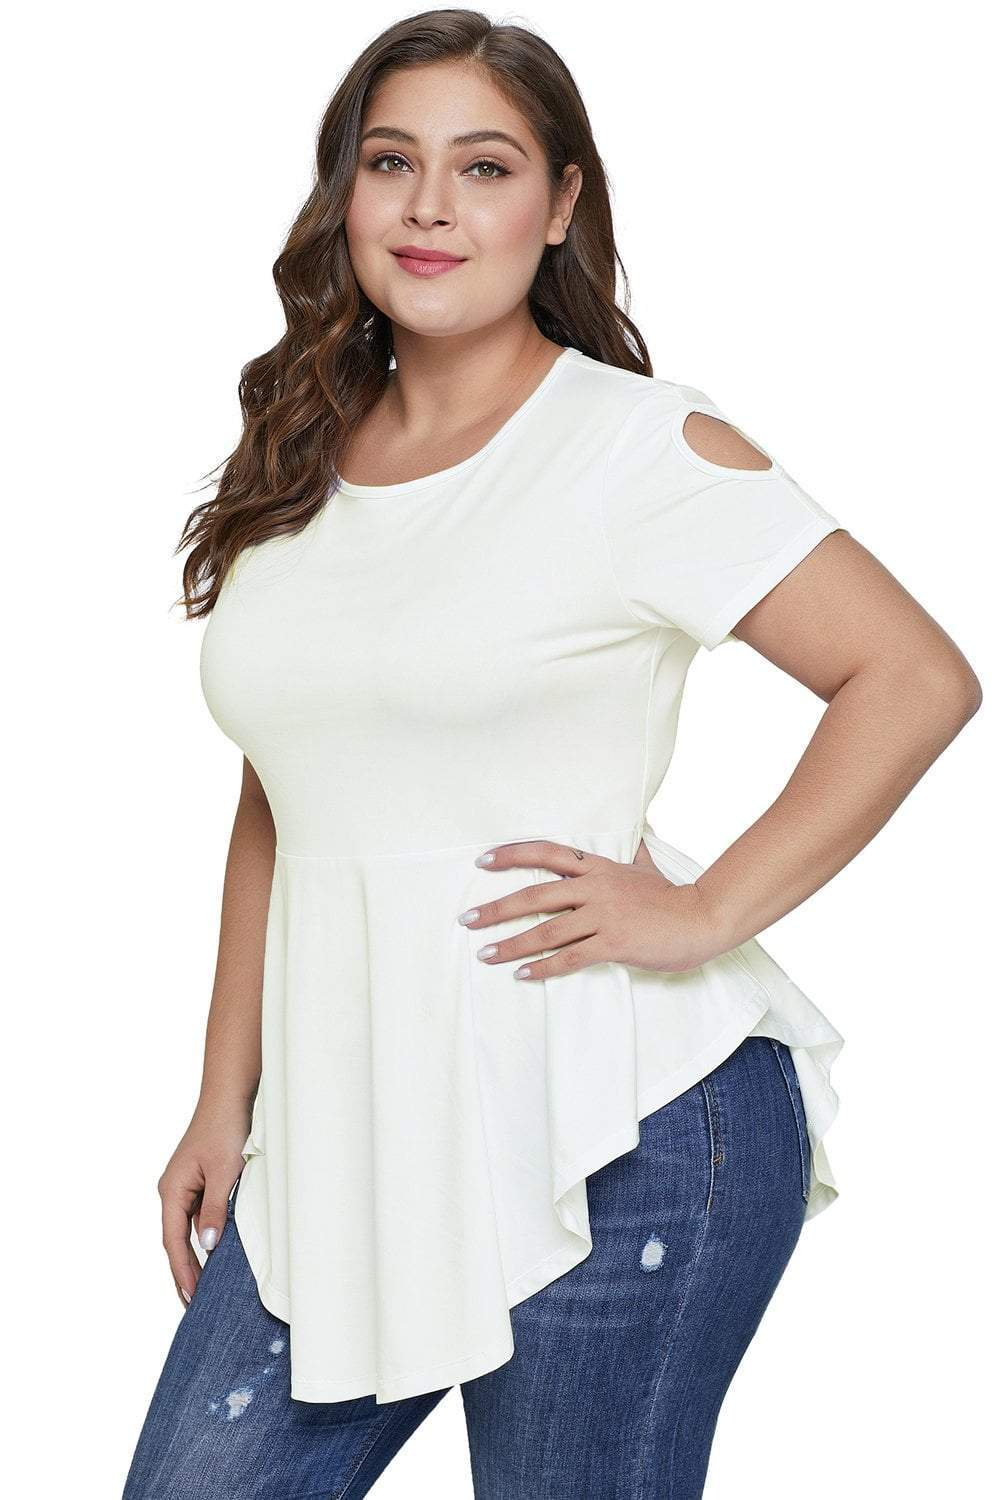 plus size T-Shirt XL / AUS 14 - 16 / White Carrie Tee